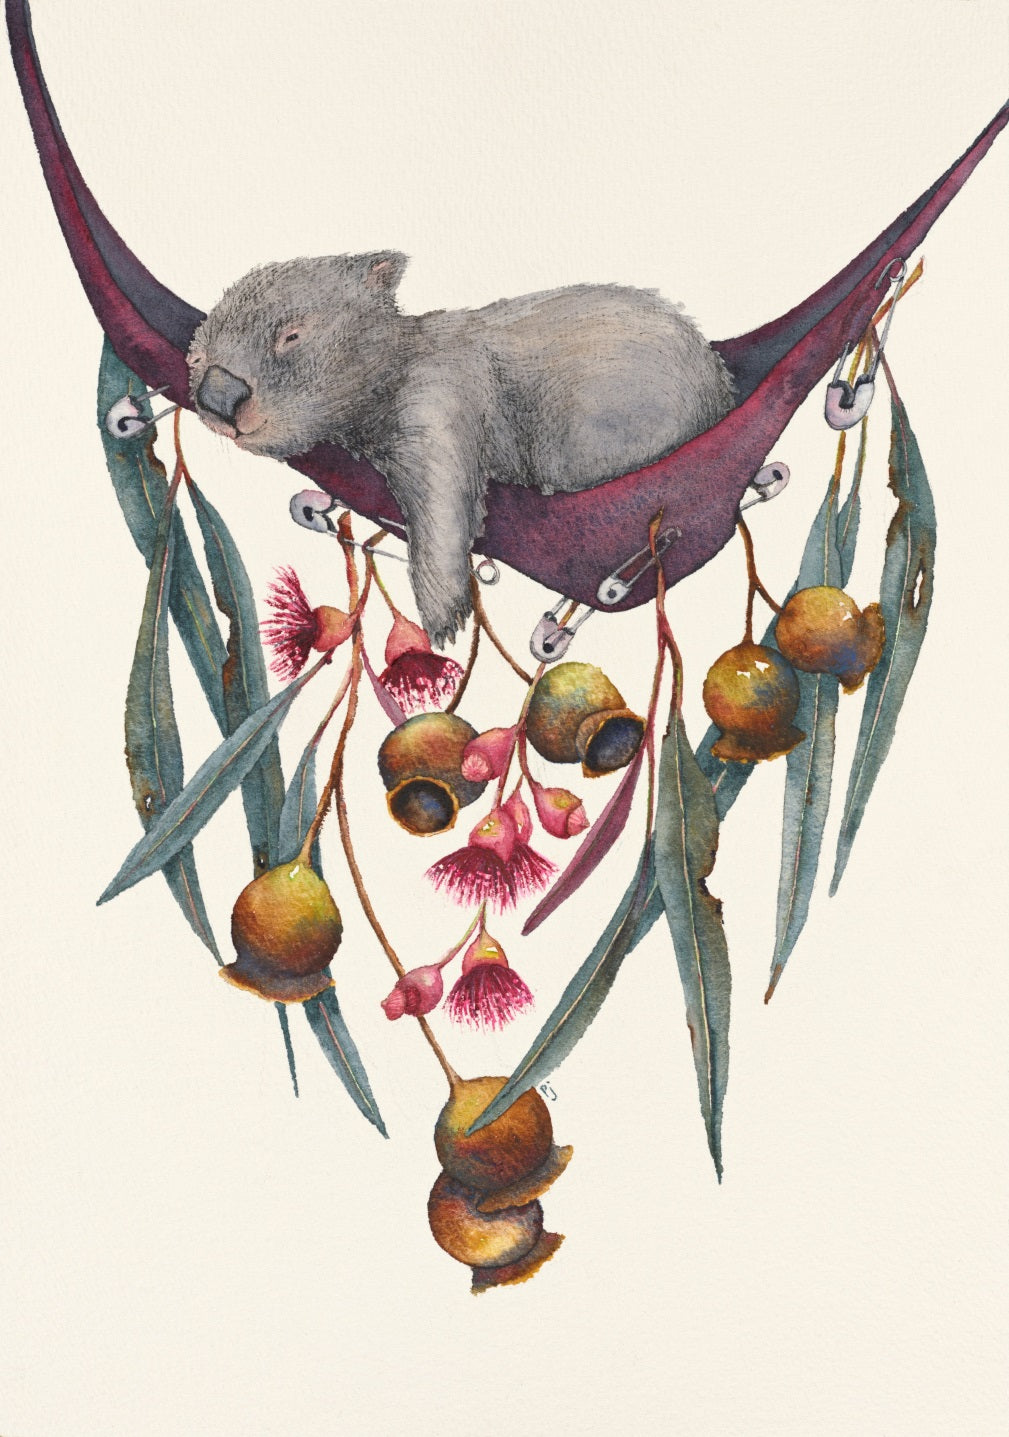 A relaxing wombat in a hammock decorated with gum leaves, nuts and flowers. The decorations roughly resemble the shape of Tasmania.